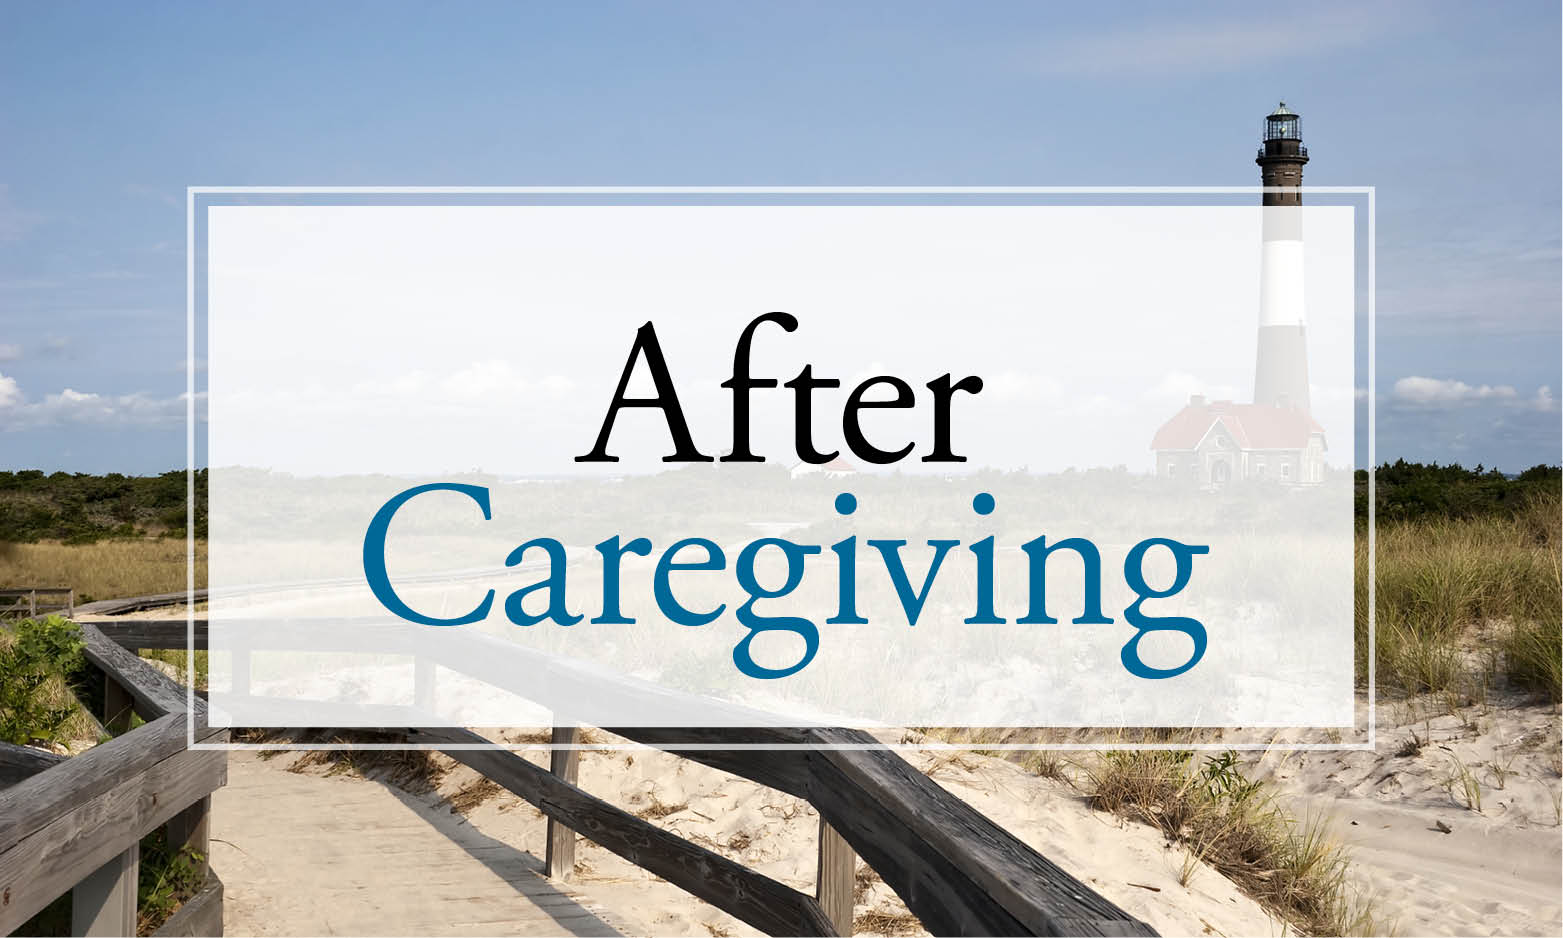 Life after caregiving